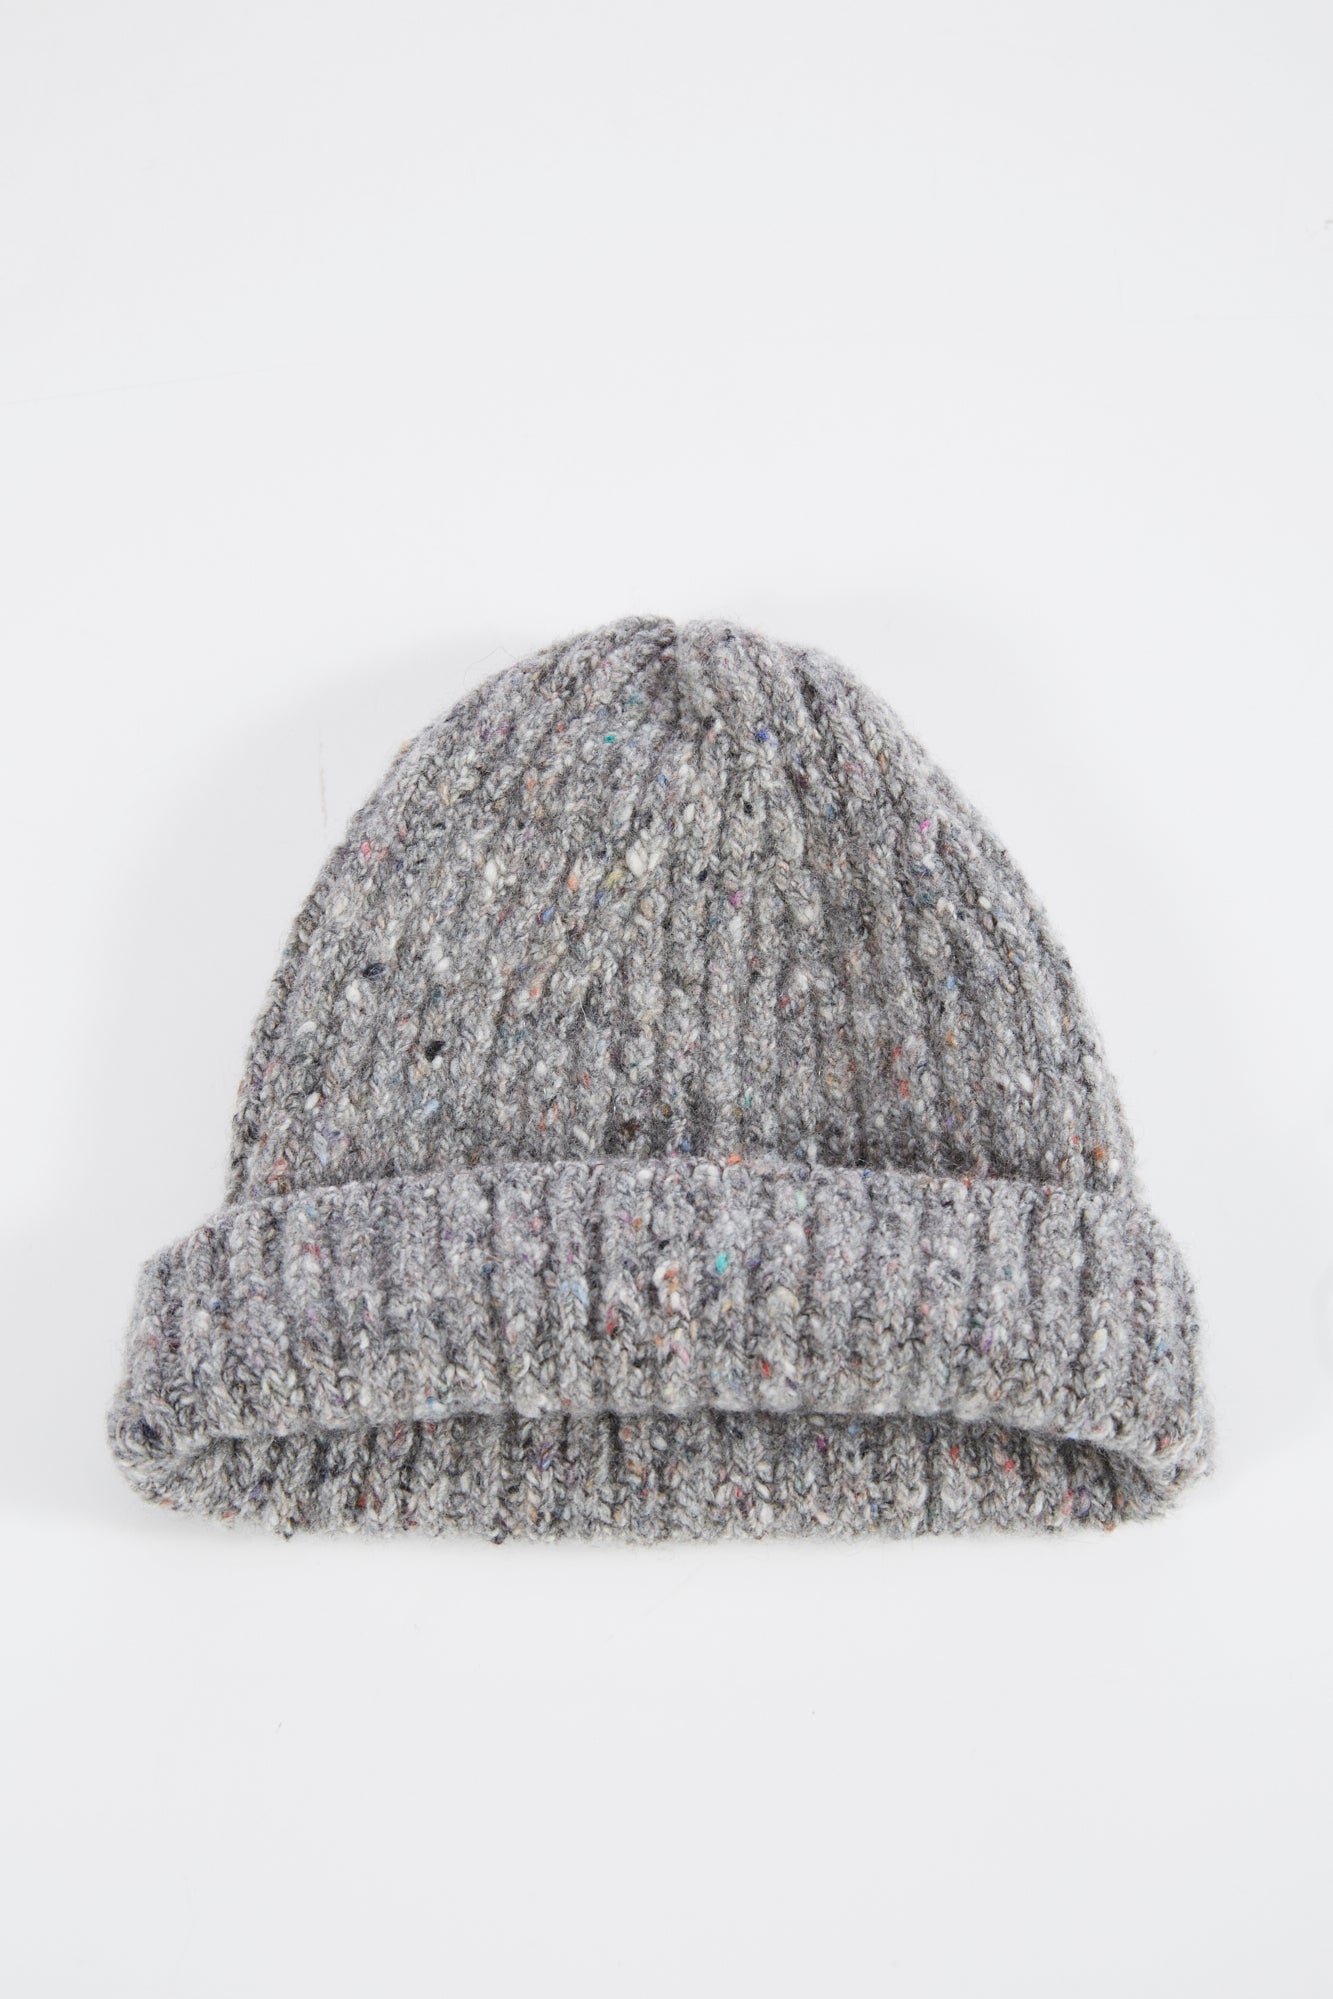 Inis Meain Grey Donegal Wool-Cashmere Cap